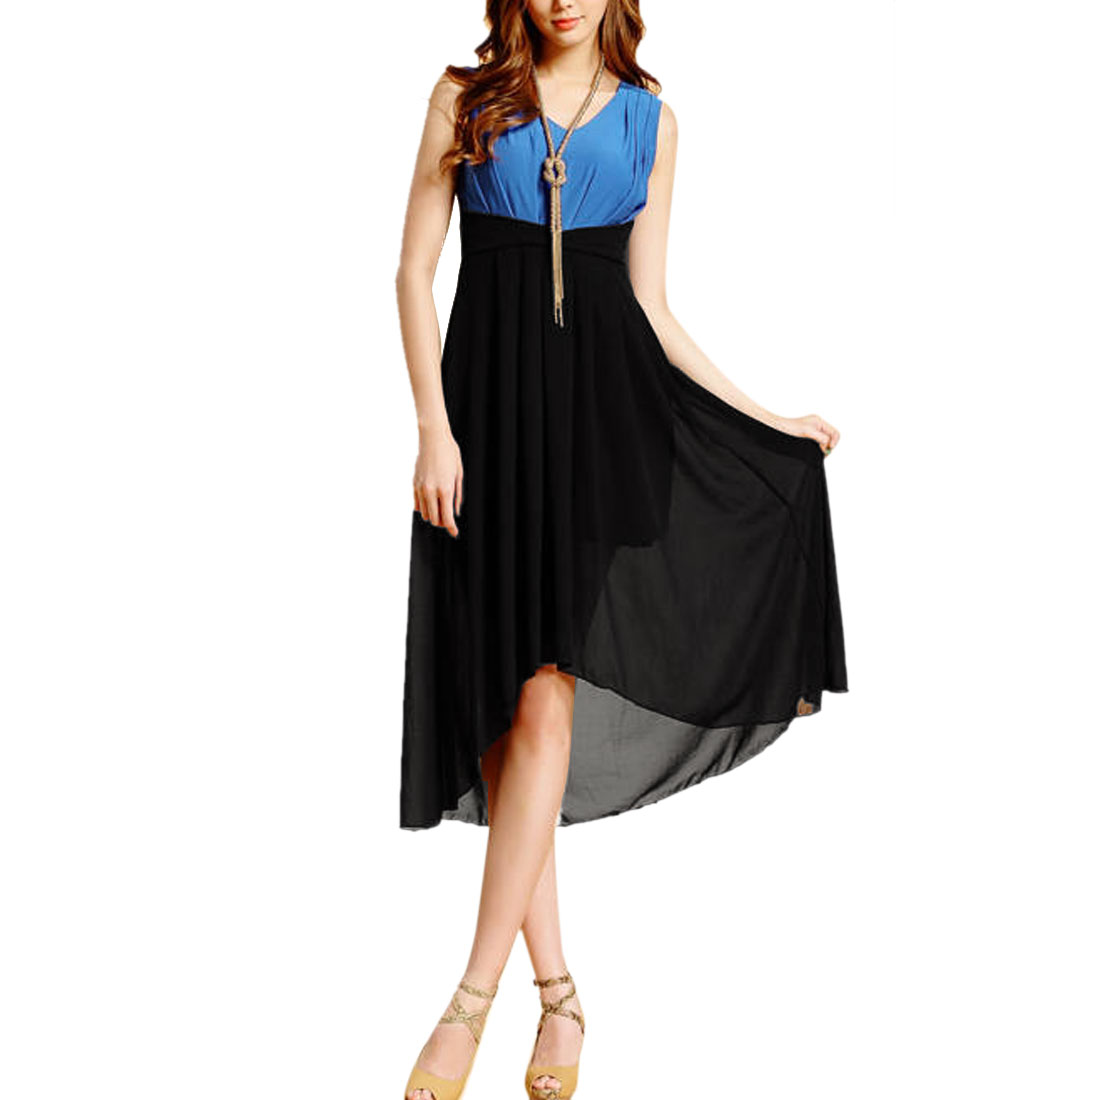 Ladies V Neck Sleeveless Low High Casual Dress Royal Blue Black XS